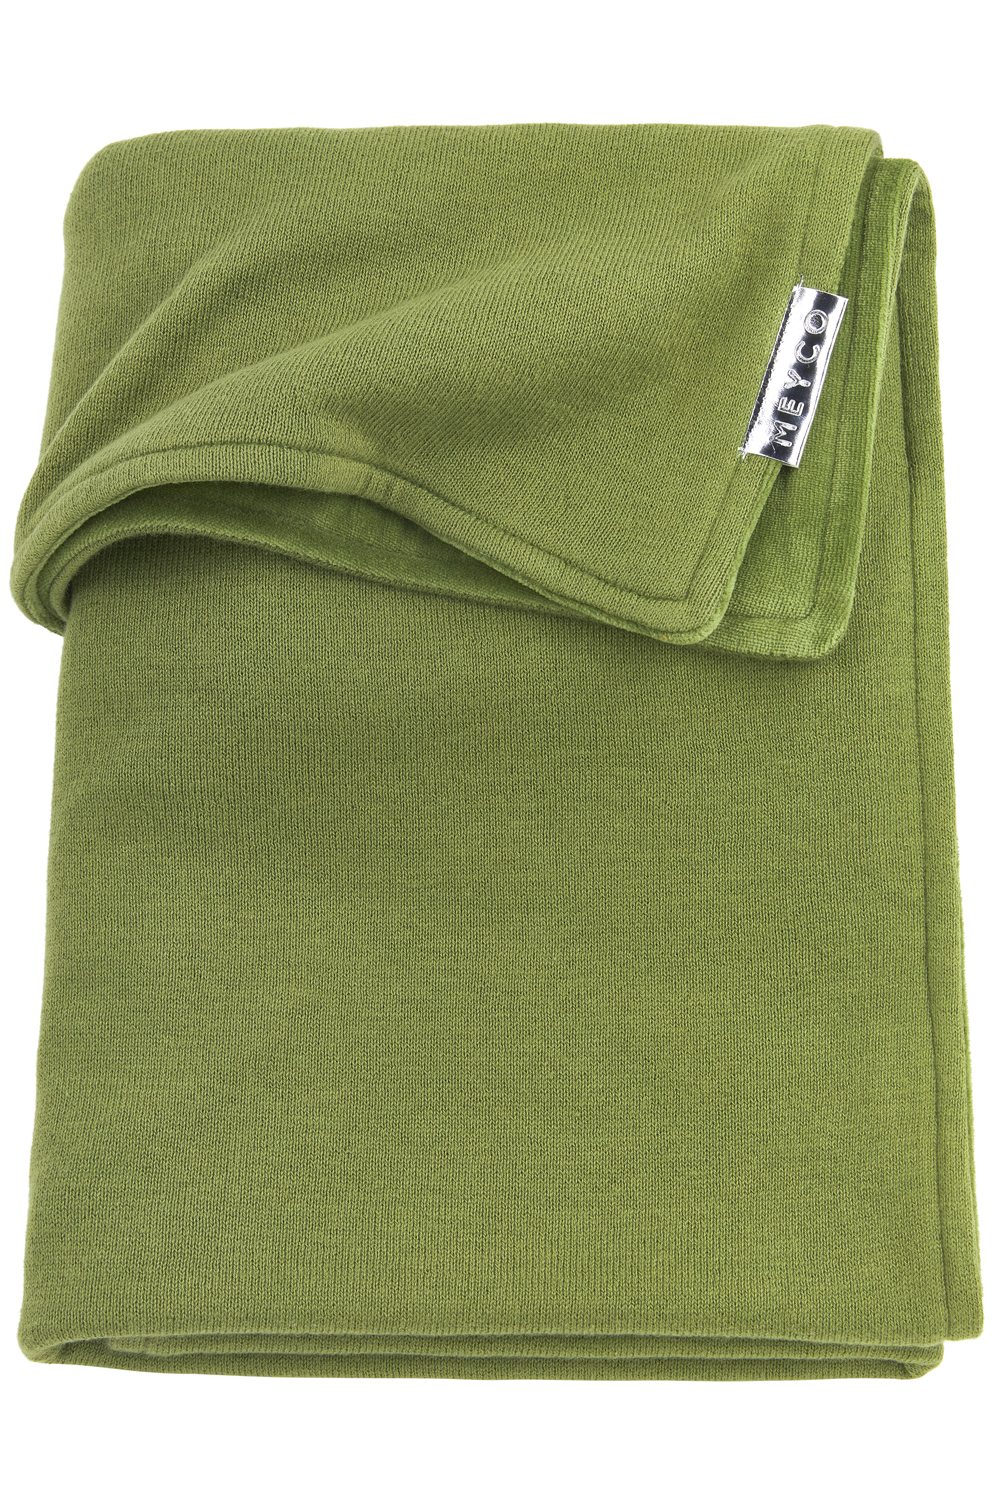 Wiegdeken Velvet Knit Basic - Avocado - 75x100cm